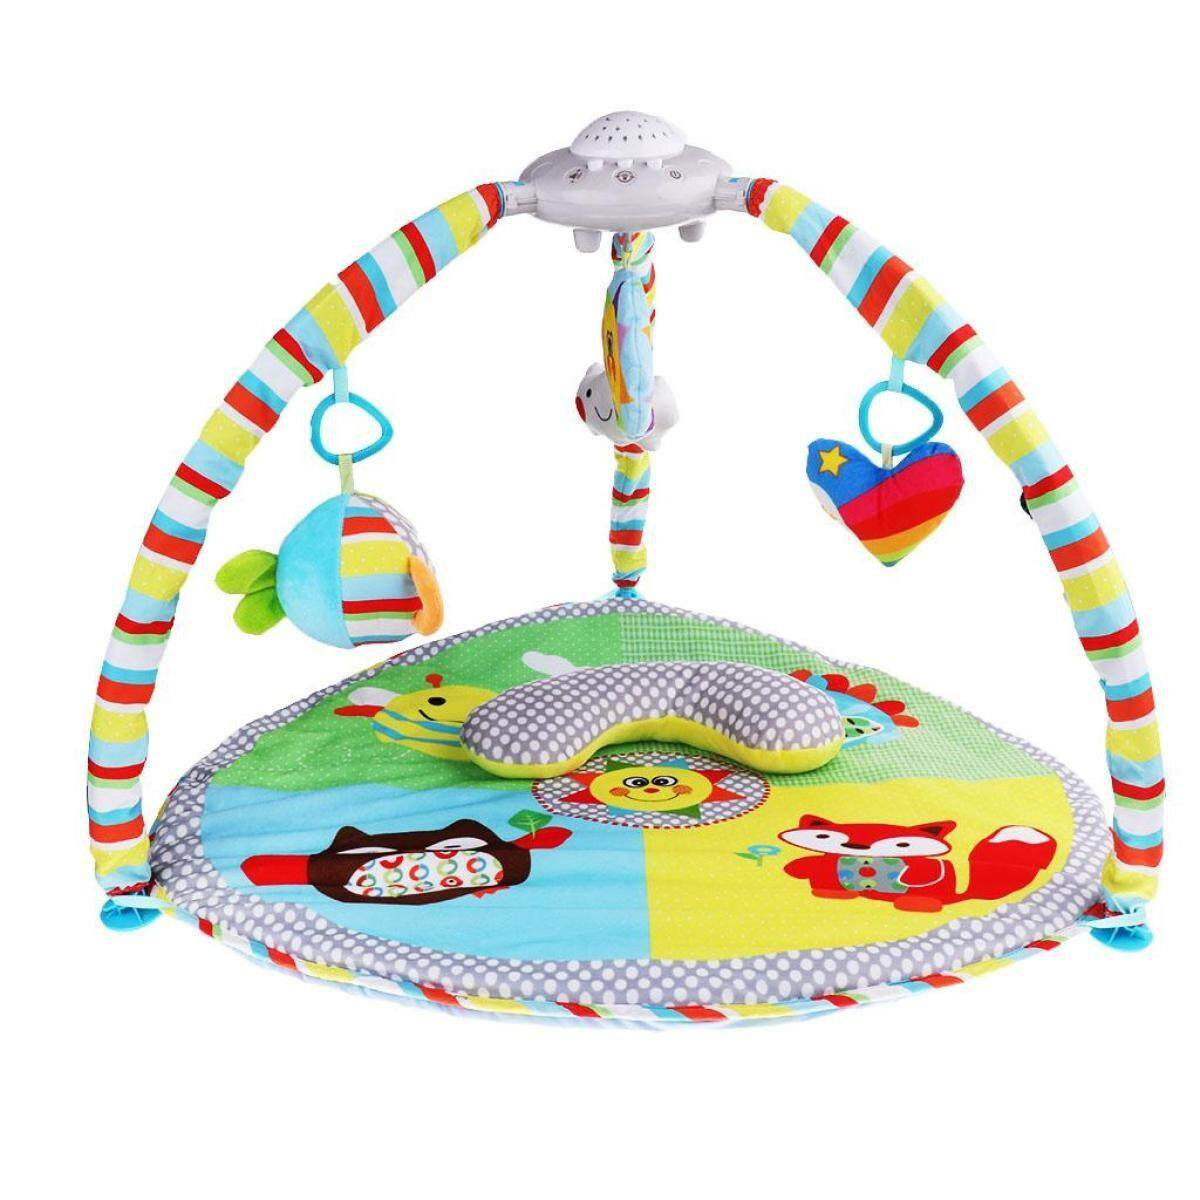 Magideal Animal Baby Infant Gym Play Mat Indoor Floor Crawl Soft Blanket Mat Toy By Uugrojuaw.